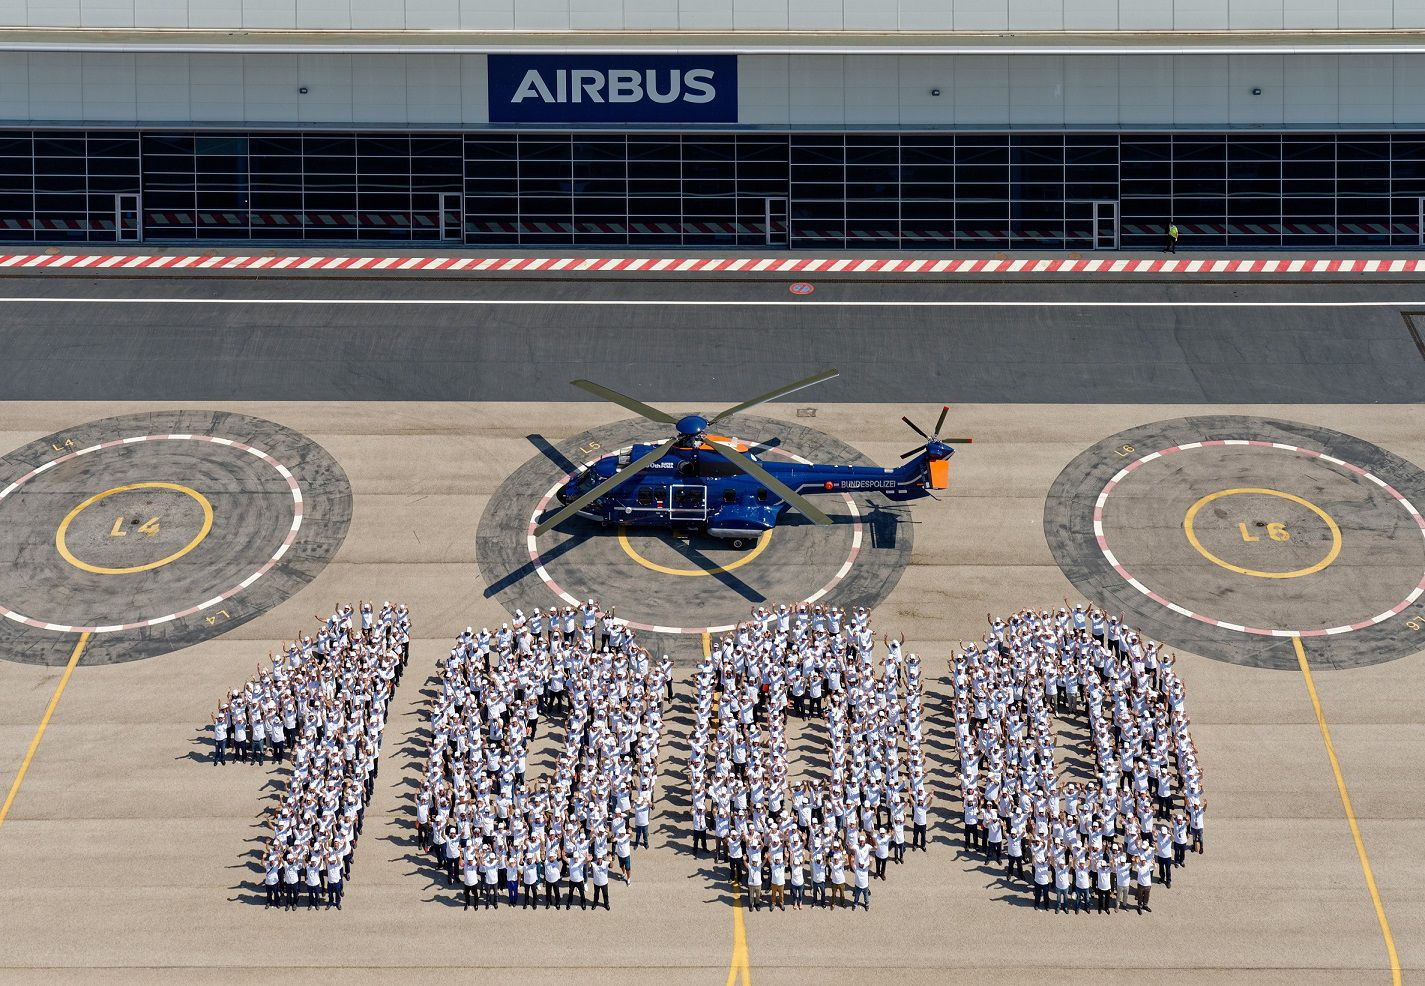 Airbus Delivers 1000th Super Puma